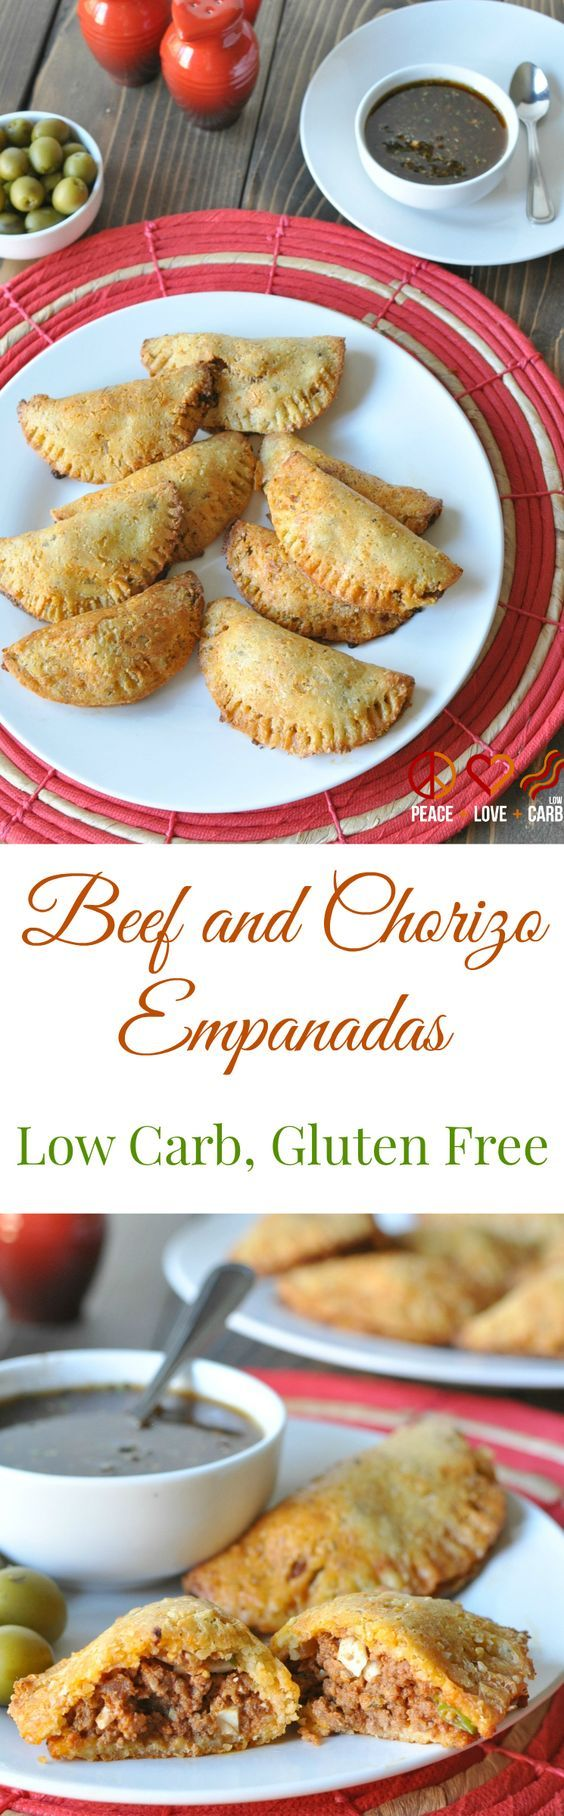 Beef and Chorizo Empanadas - Low Carb and Gluten Free | Peace Love and ...